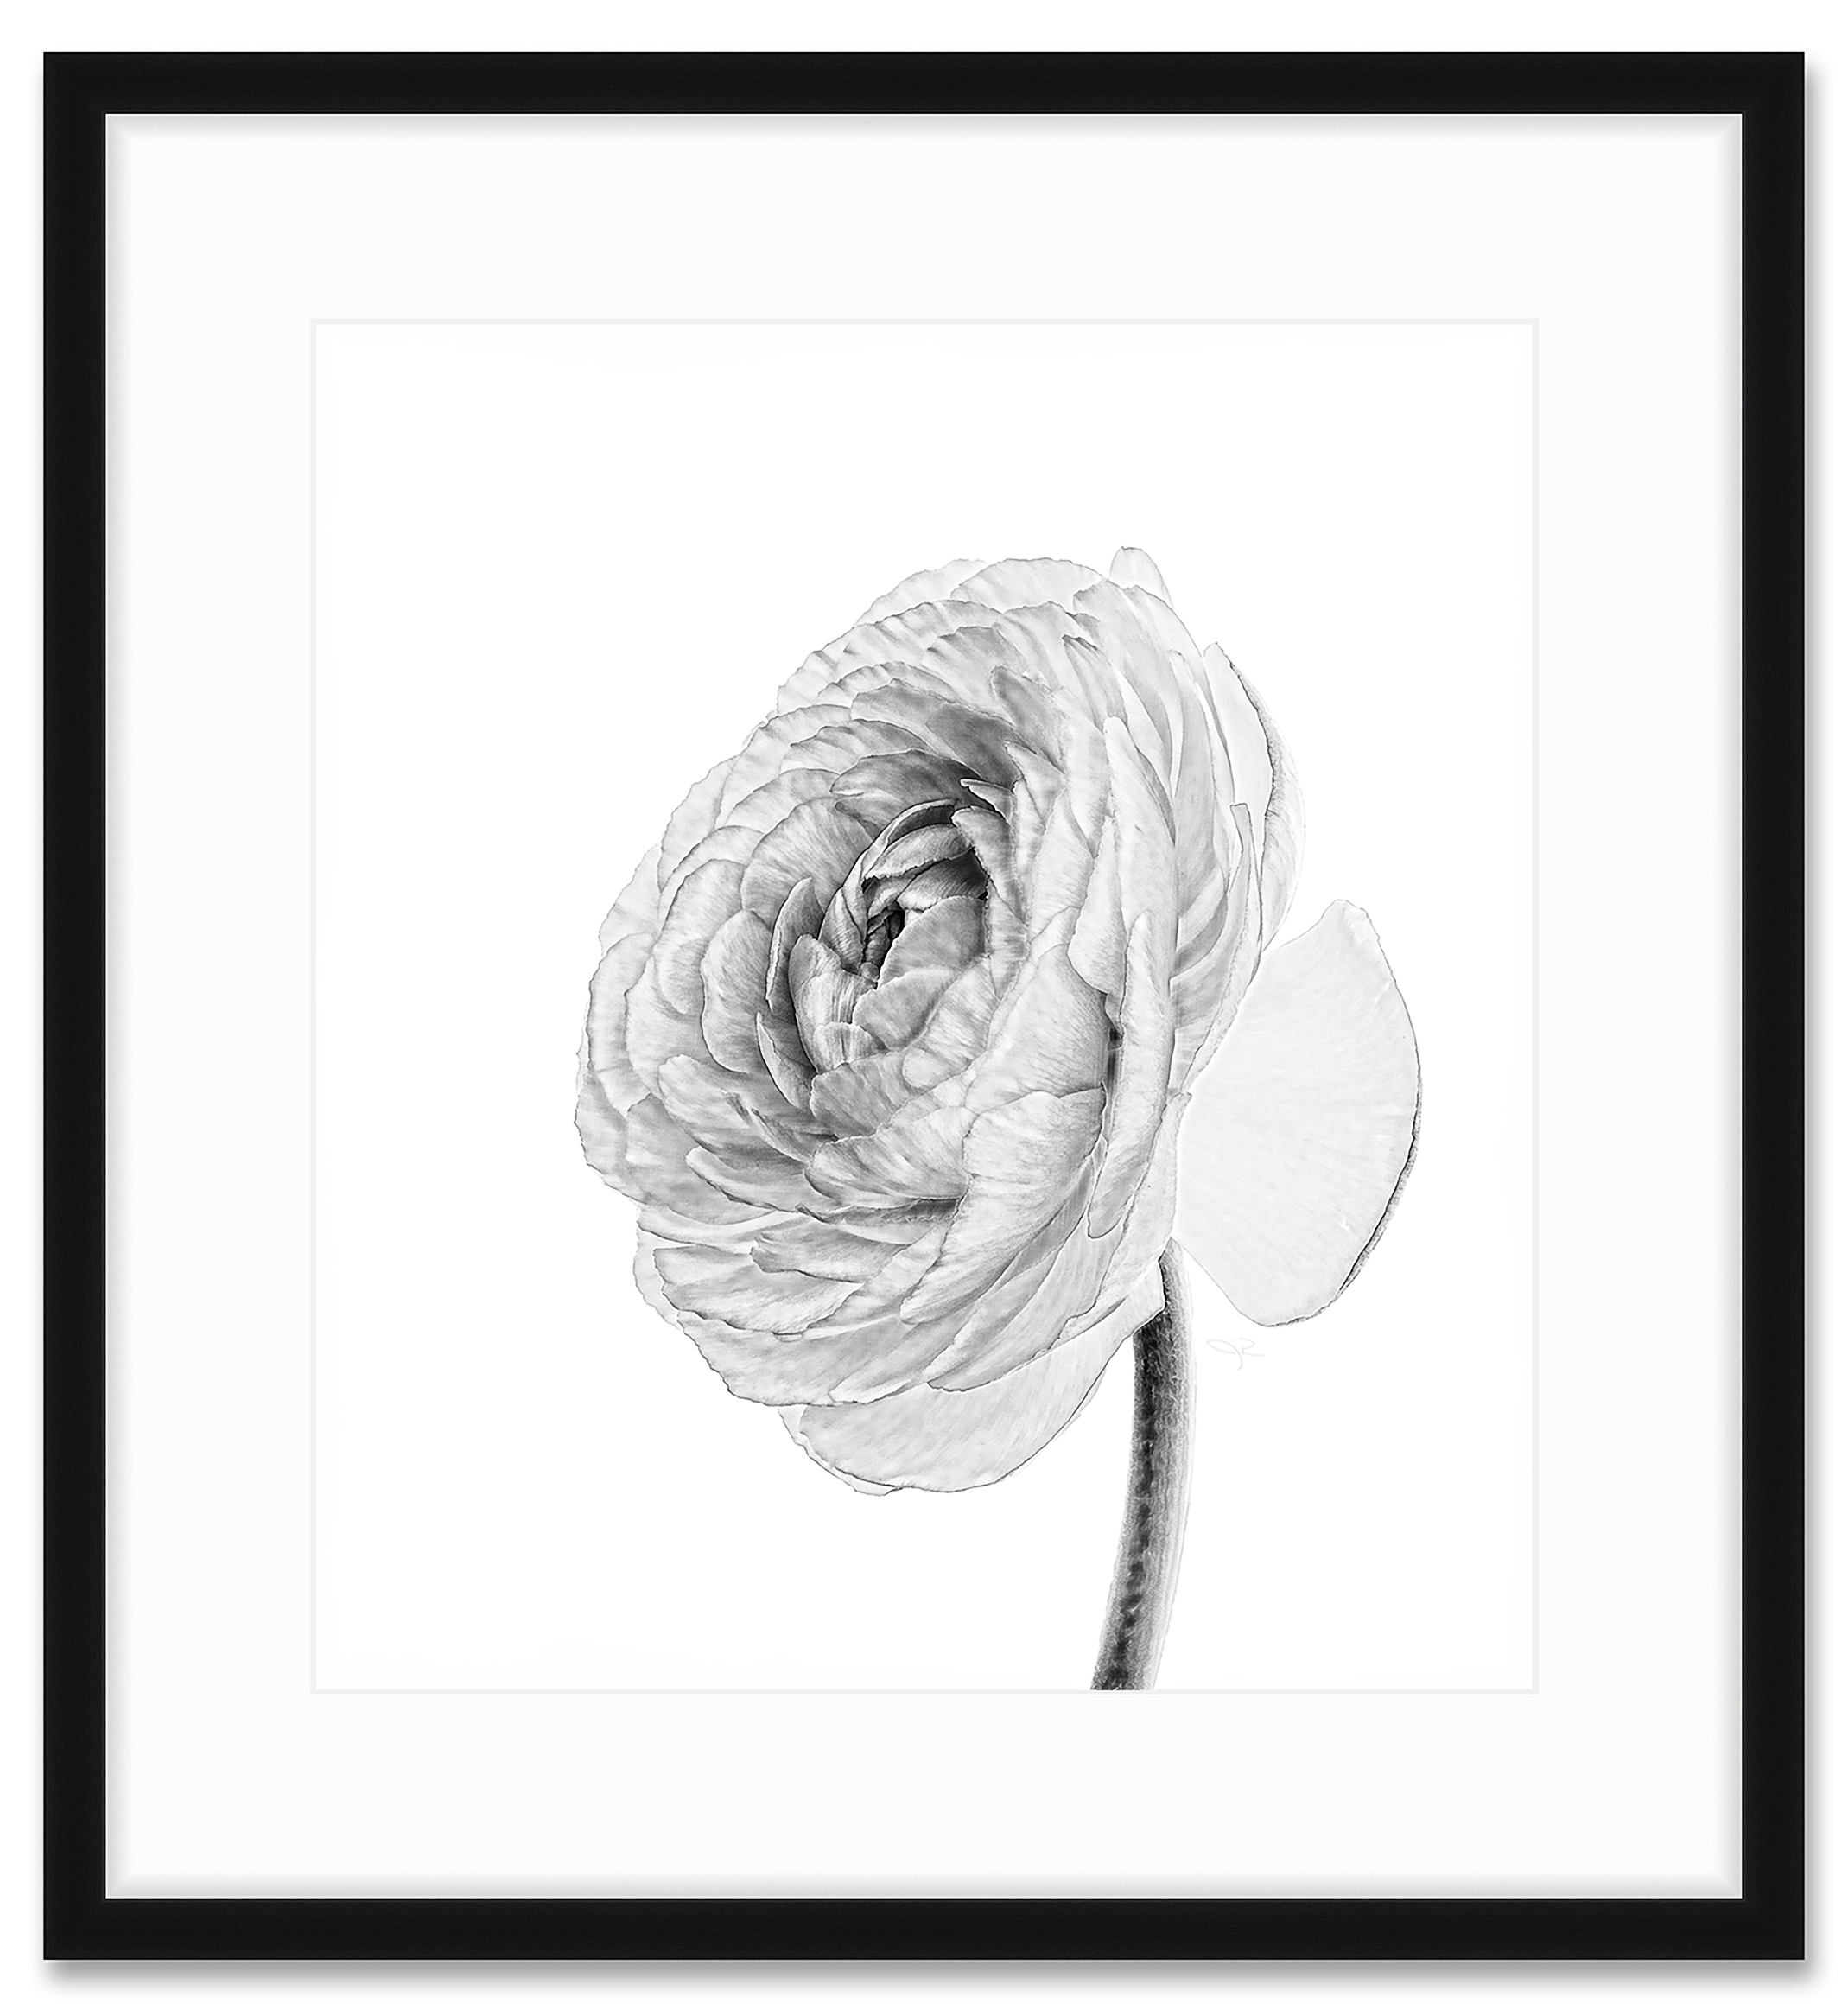 black-and-white-ranunculus-framed-2139px.jpg